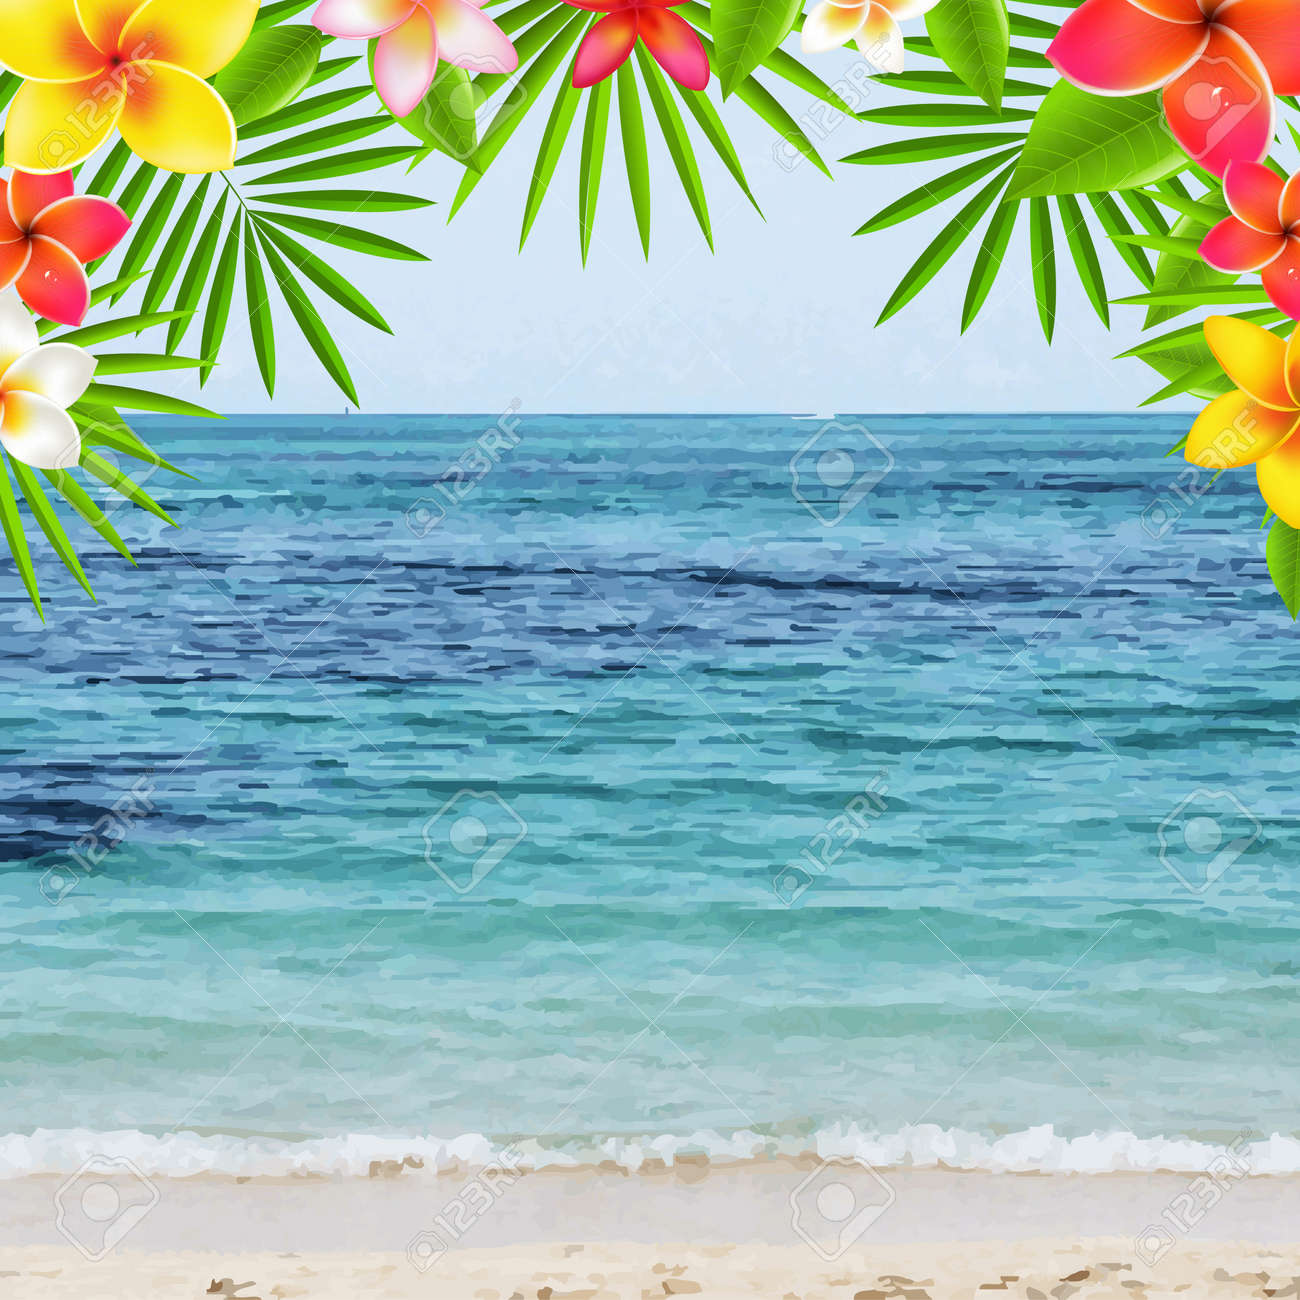 Happy Summer Time Poster With Frangipani, With Gradient Mesh, Illustration - 31848380